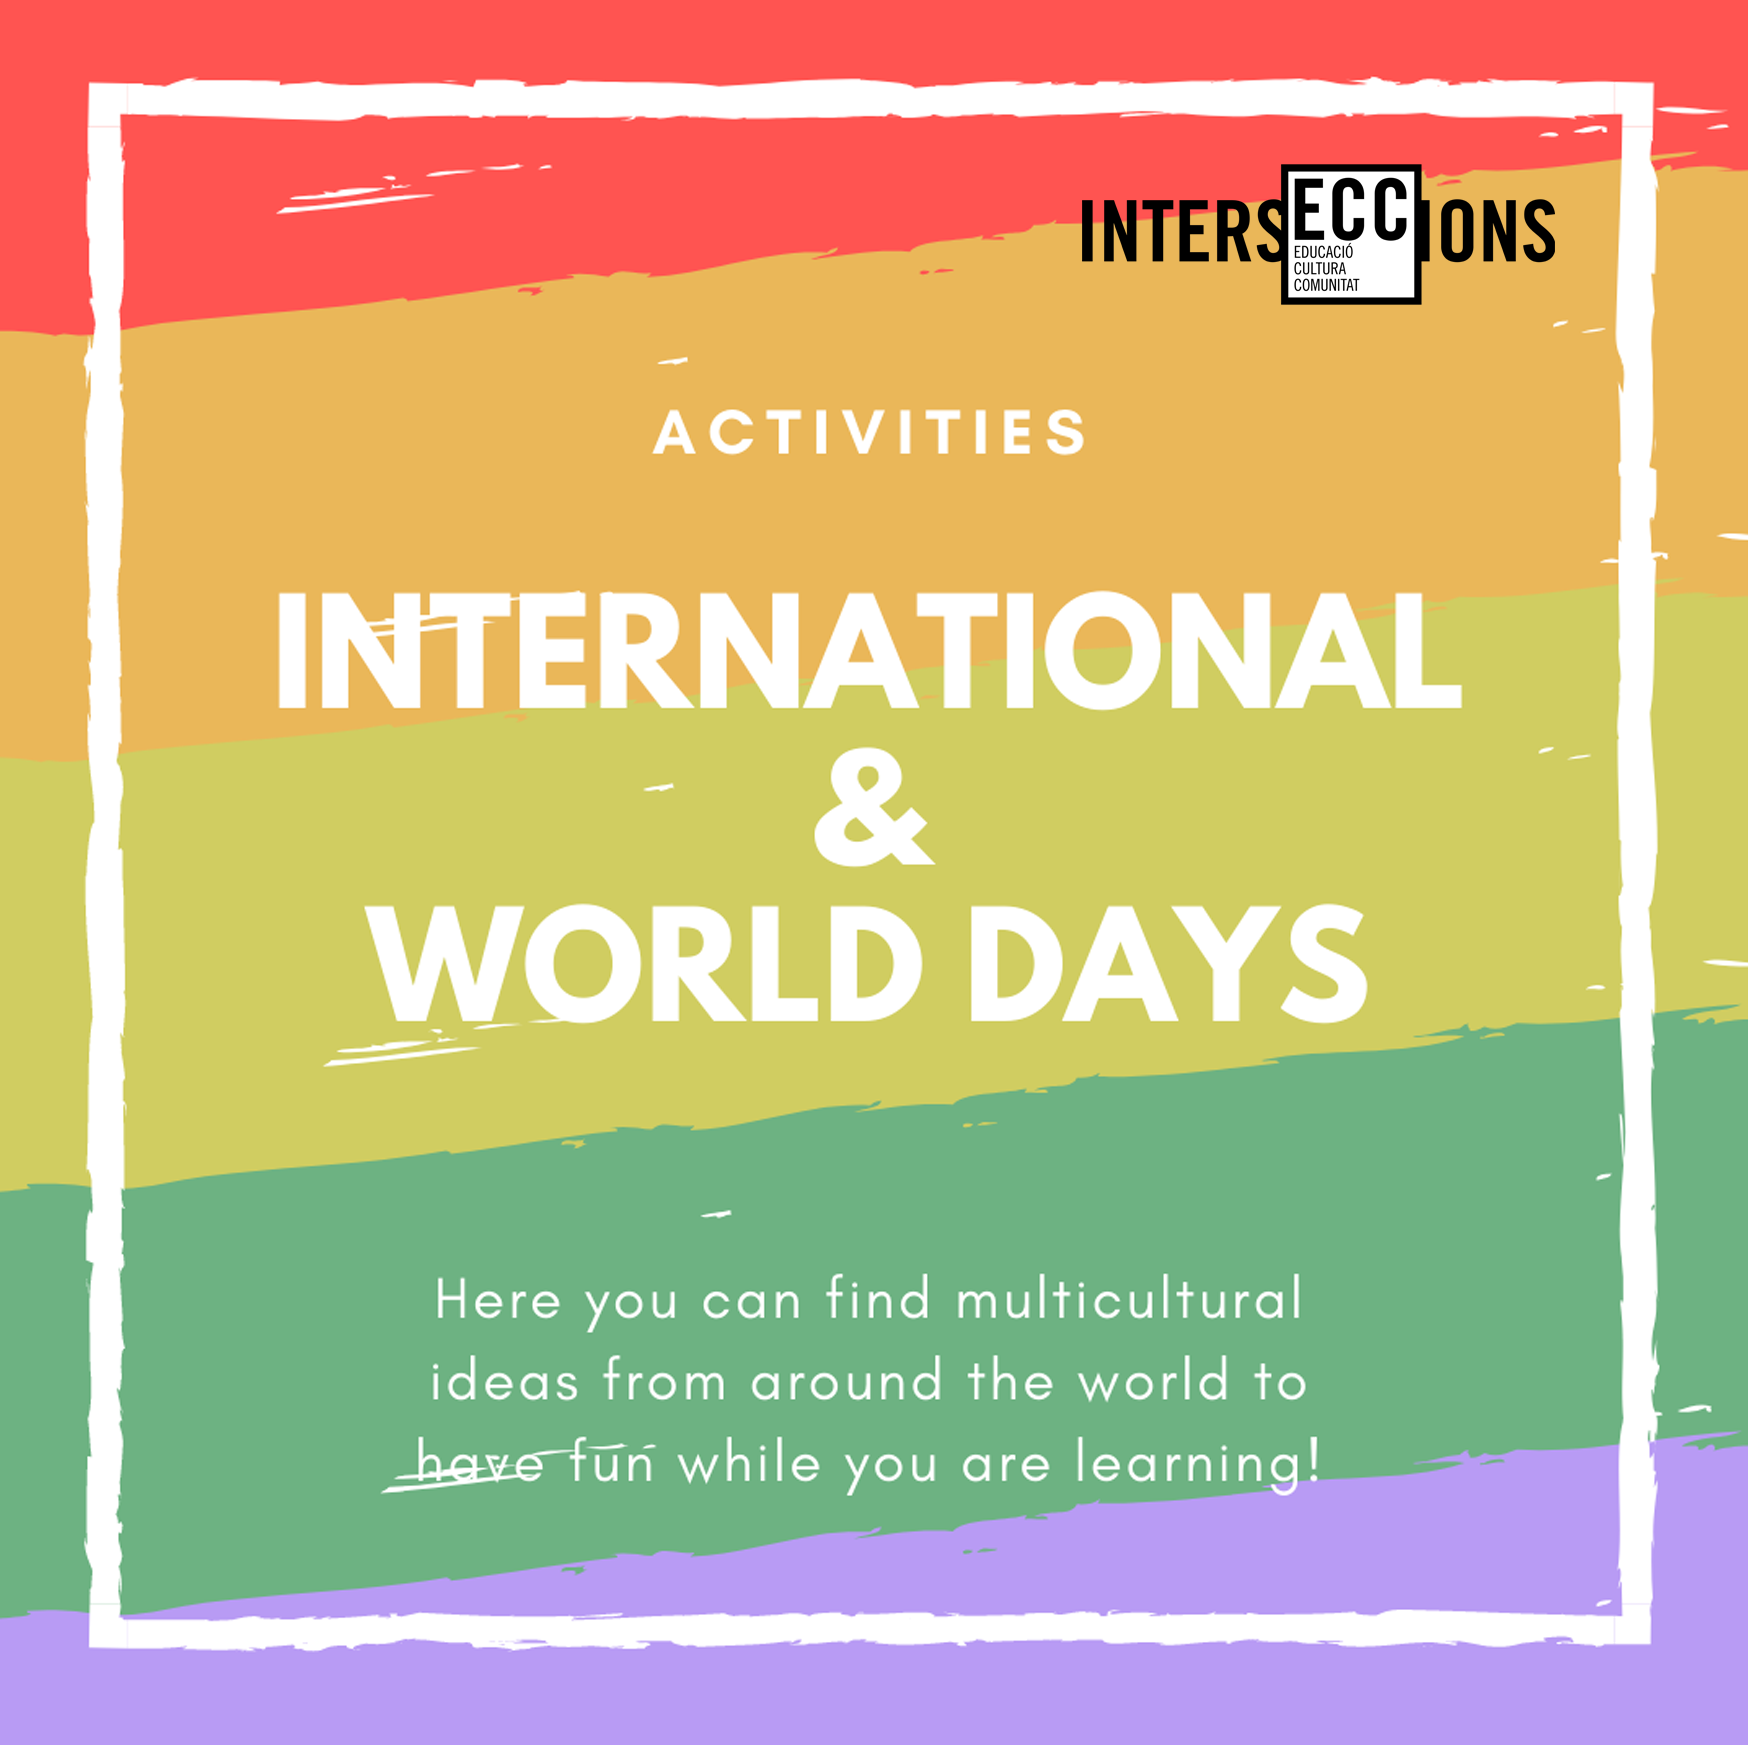 INTERNATIONAL & WORLD DAYS